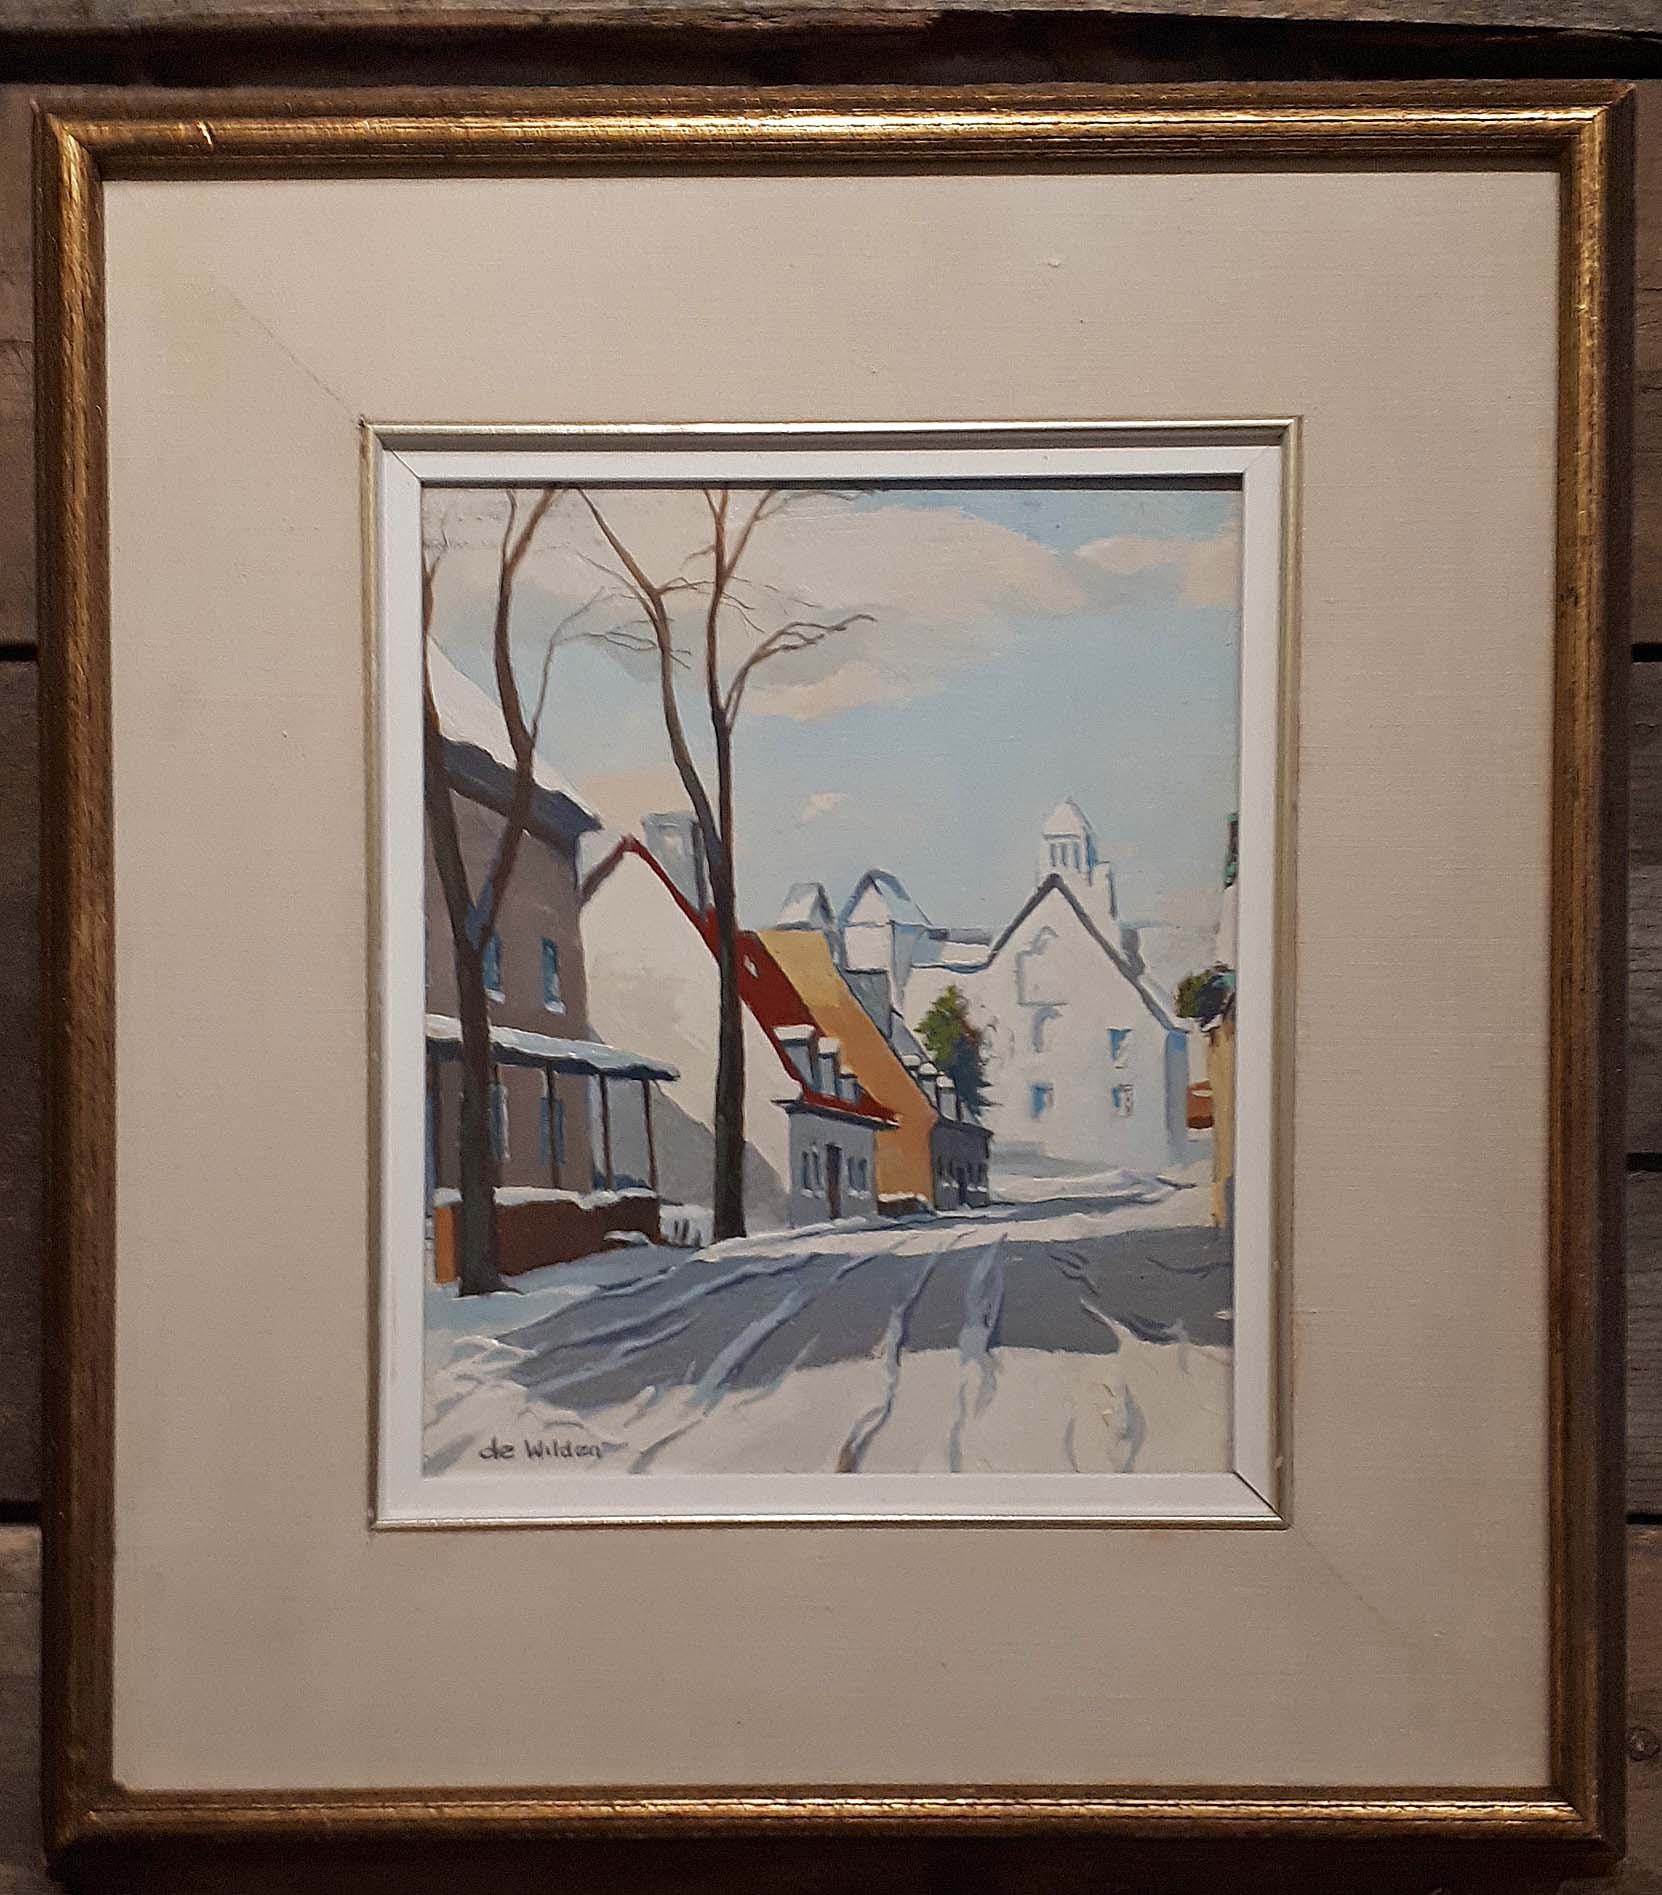 Stuart De Wilden (Manitoba) Oil on Board, Size: 18 x 20, Price: 295.00